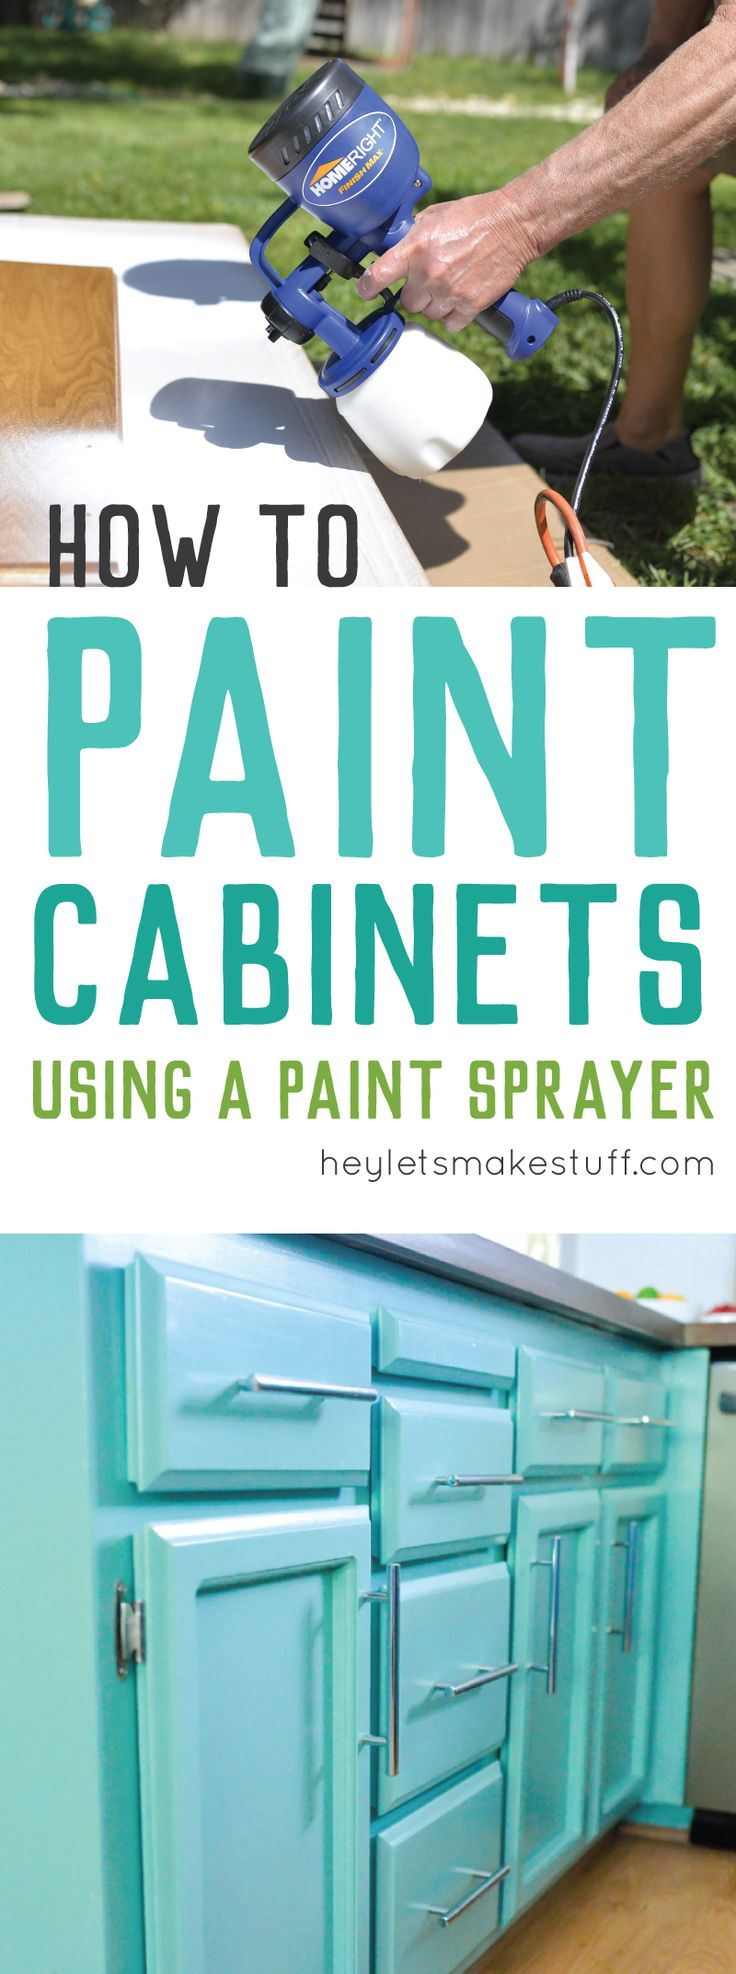 25 best ideas about how to build cabinets on pinterest for Best latex paint for kitchen cabinets